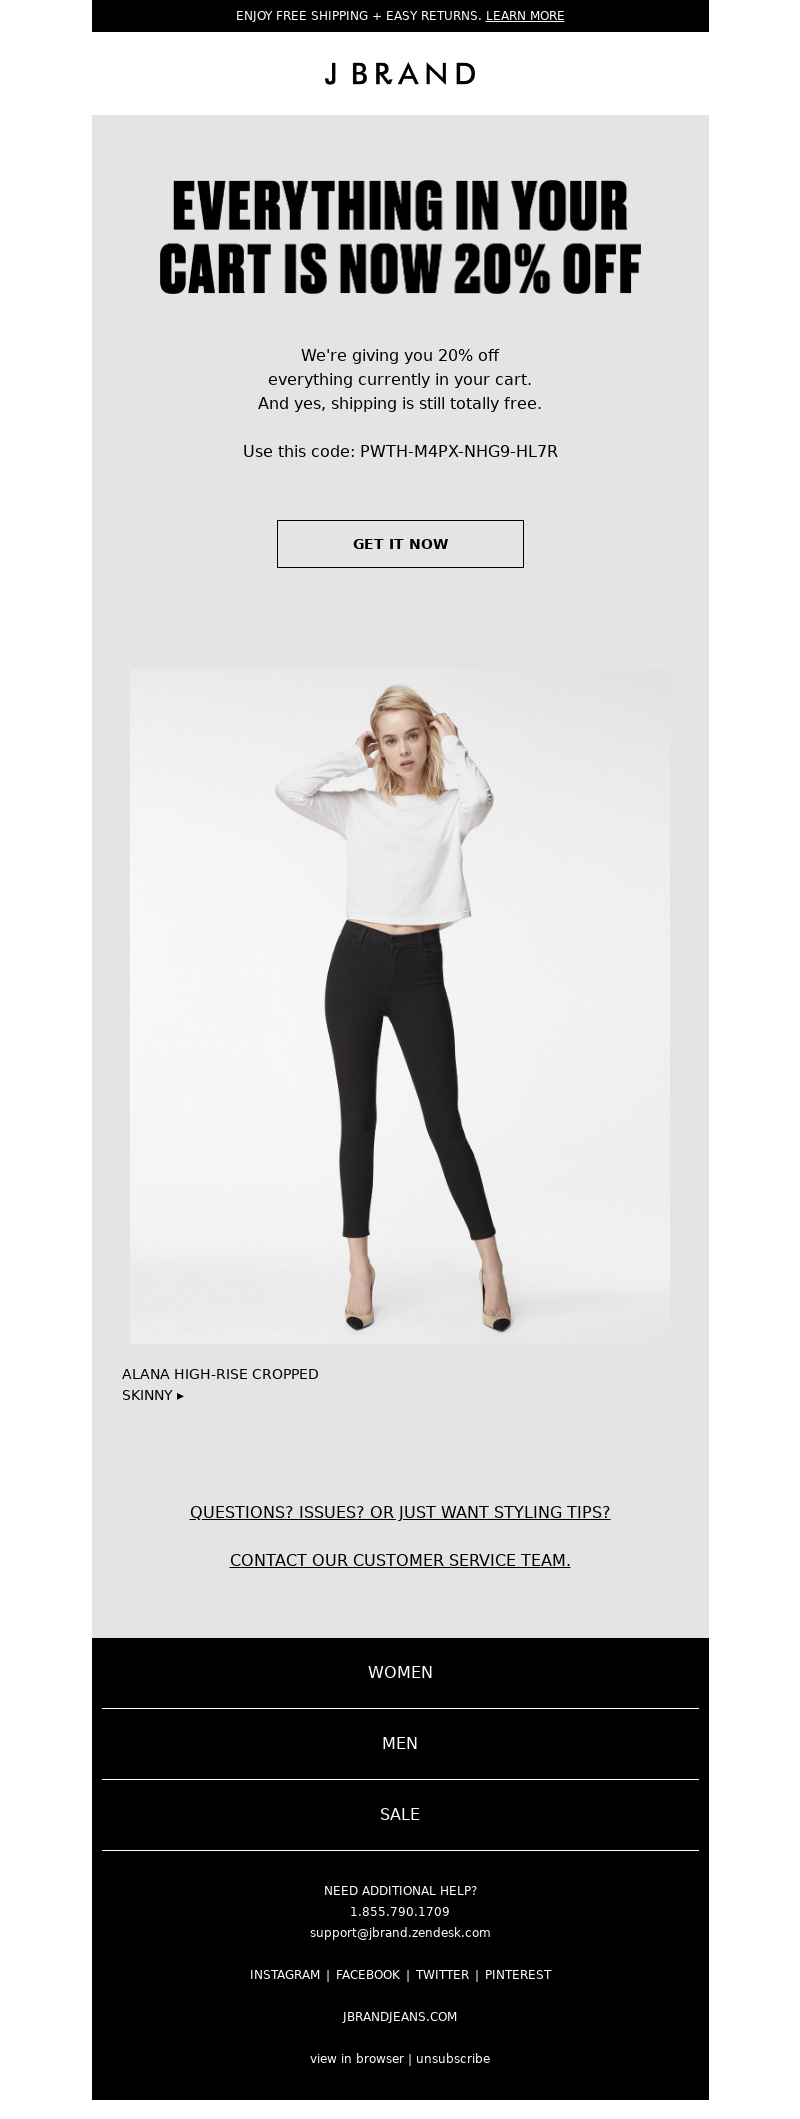 J BRAND - Get 20% Off Your Shopping Cart NOW